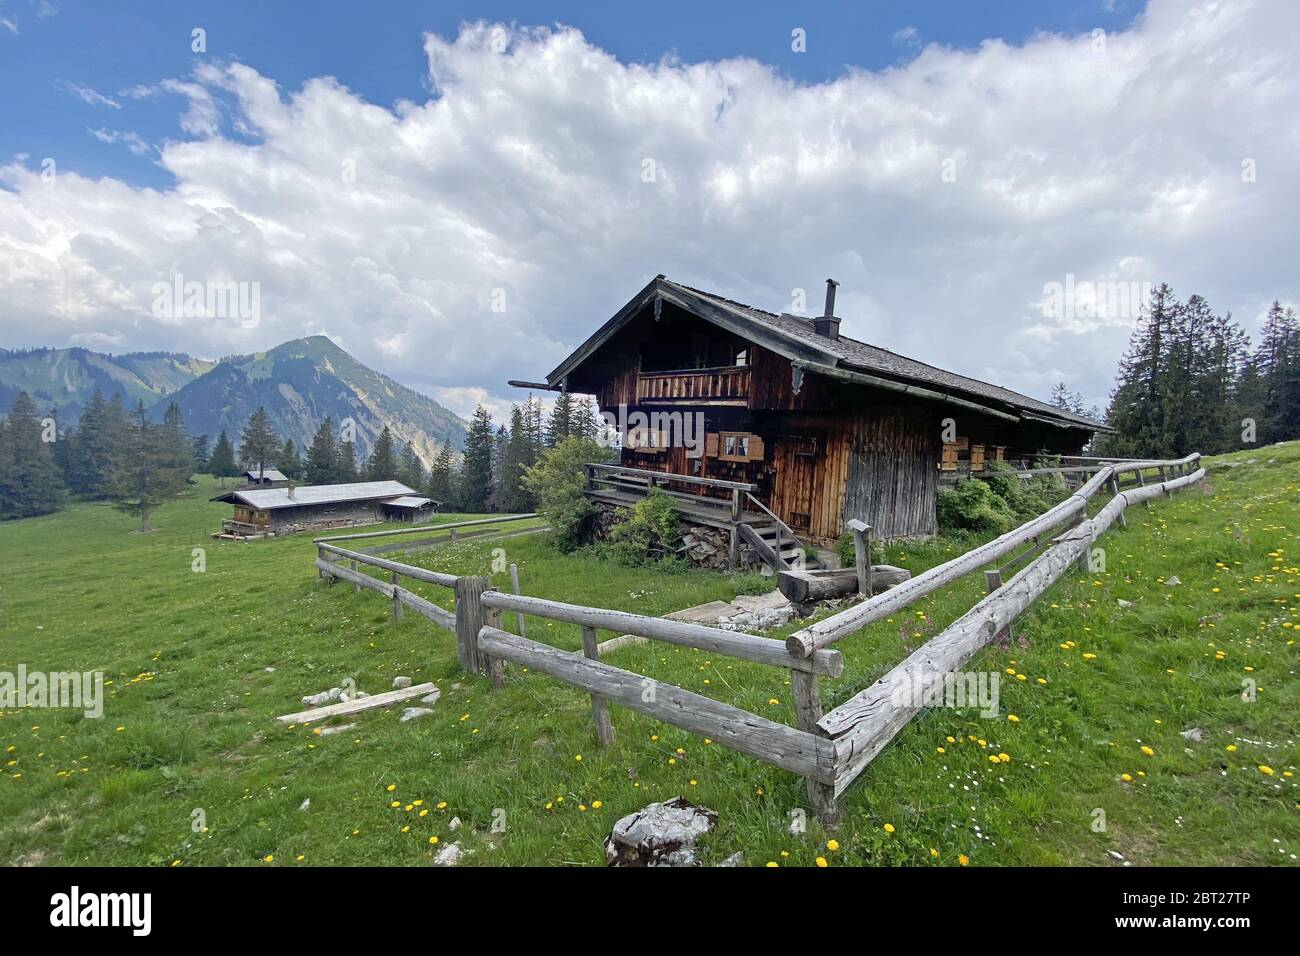 Rottach Egern, Deutschland. 22nd May, 2020. Berg Almhuette, chalet near Rottach Egern/Tegernsee, hiking, mountains, mountains, Alps. Panorama, view. | usage worldwide Credit: dpa/Alamy Live News Stock Photo